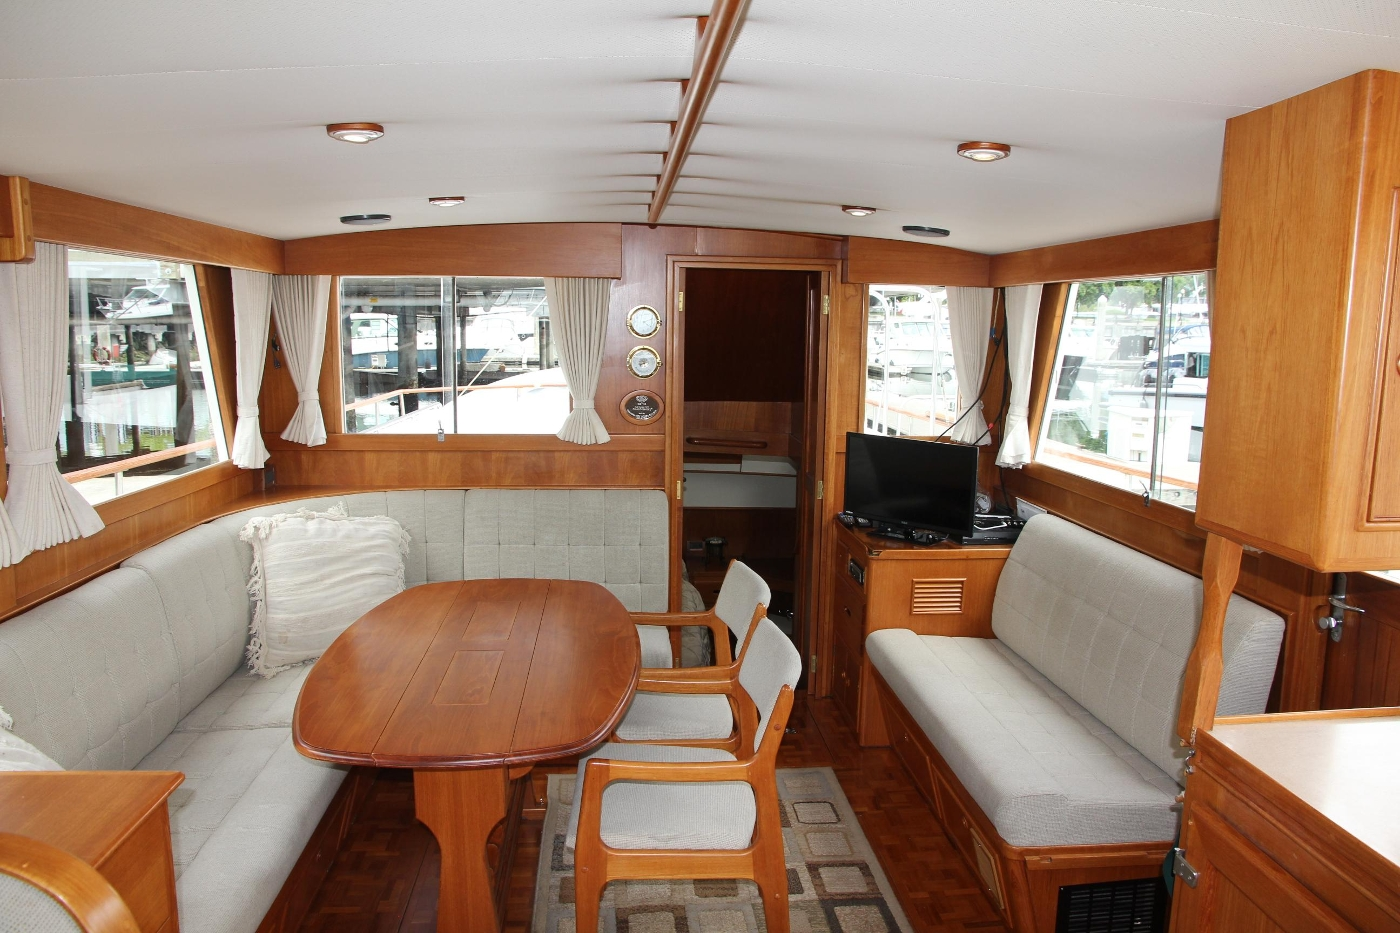 2001 Grand Banks 42 Classic, Salon Looking Aft